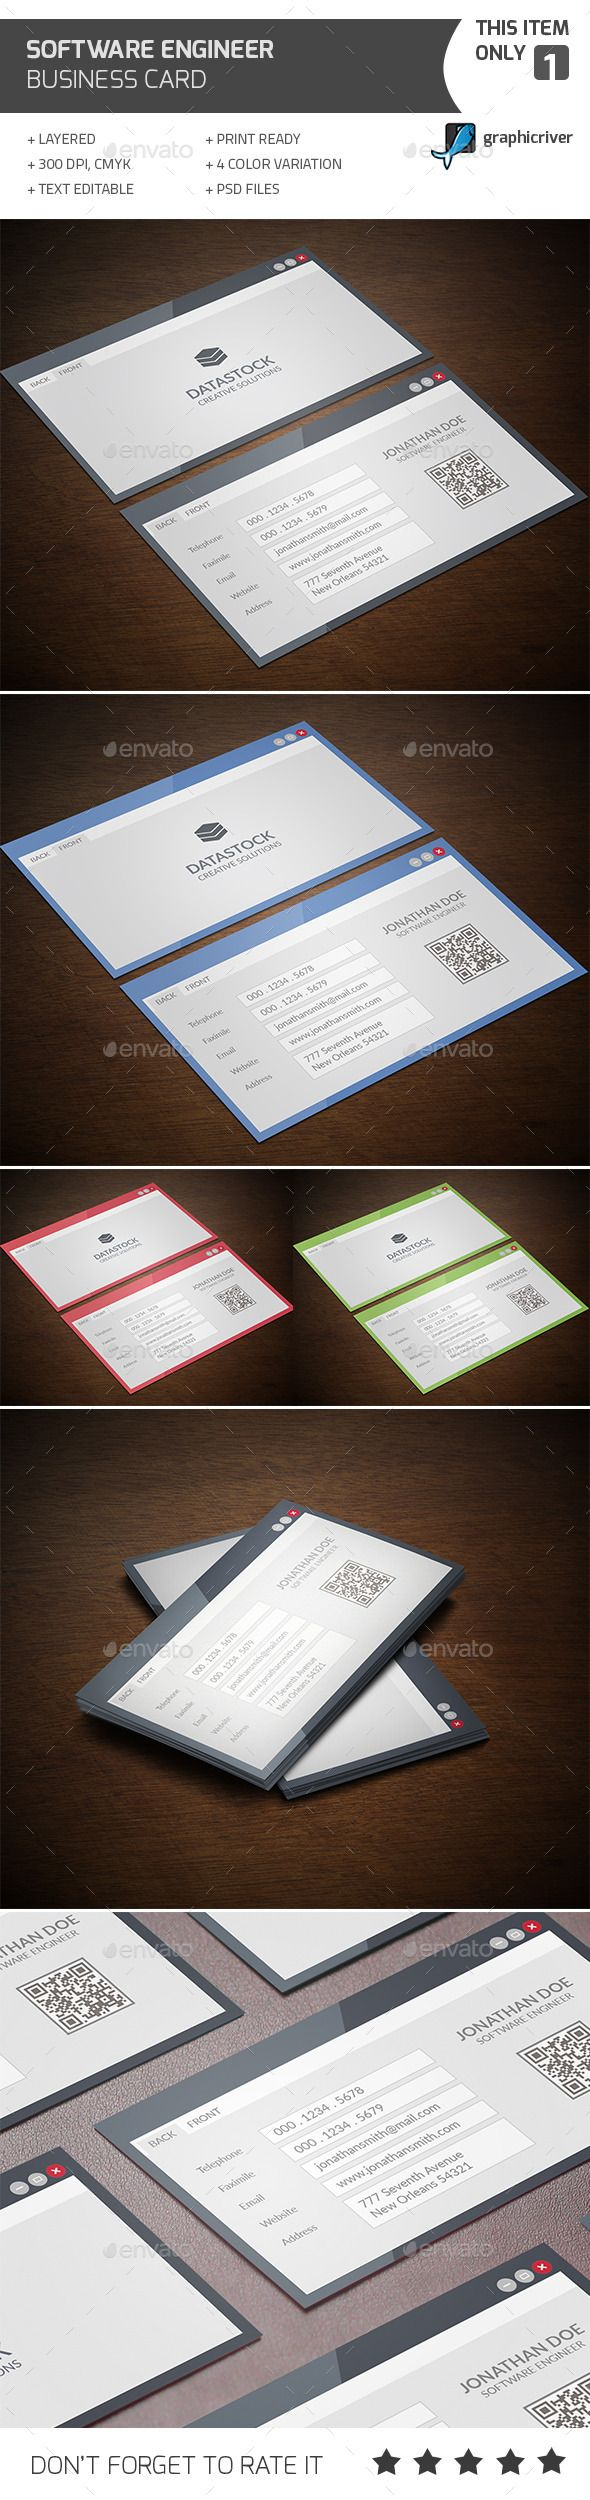 Software engineer business card pinterest business card design software engineer business card design template industry specific business card template psd cheaphphosting Gallery